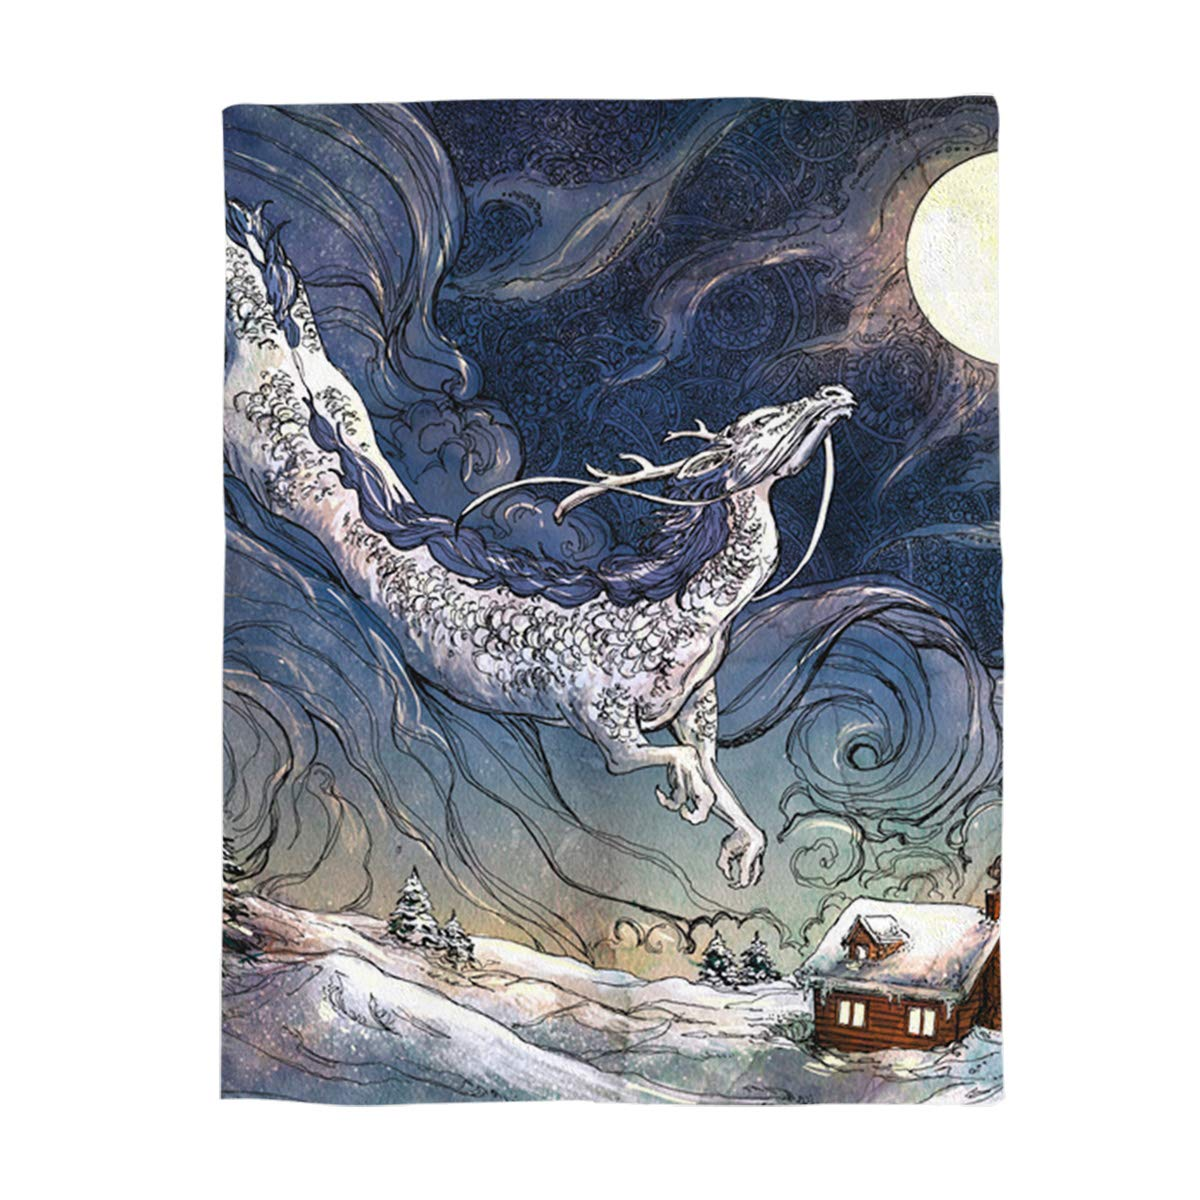 Dragon436lyag4291 49x79inch=125x200cm YEHO Art Gallery Flannel Fleece Bed Blanket Soft Throw-Blankets Home Decor,Retro Railroad Track Building Pattern,Lightweight Cozy Plush Blankets for Bedroom Living Room Sofa Couch,39 x 49 Inch